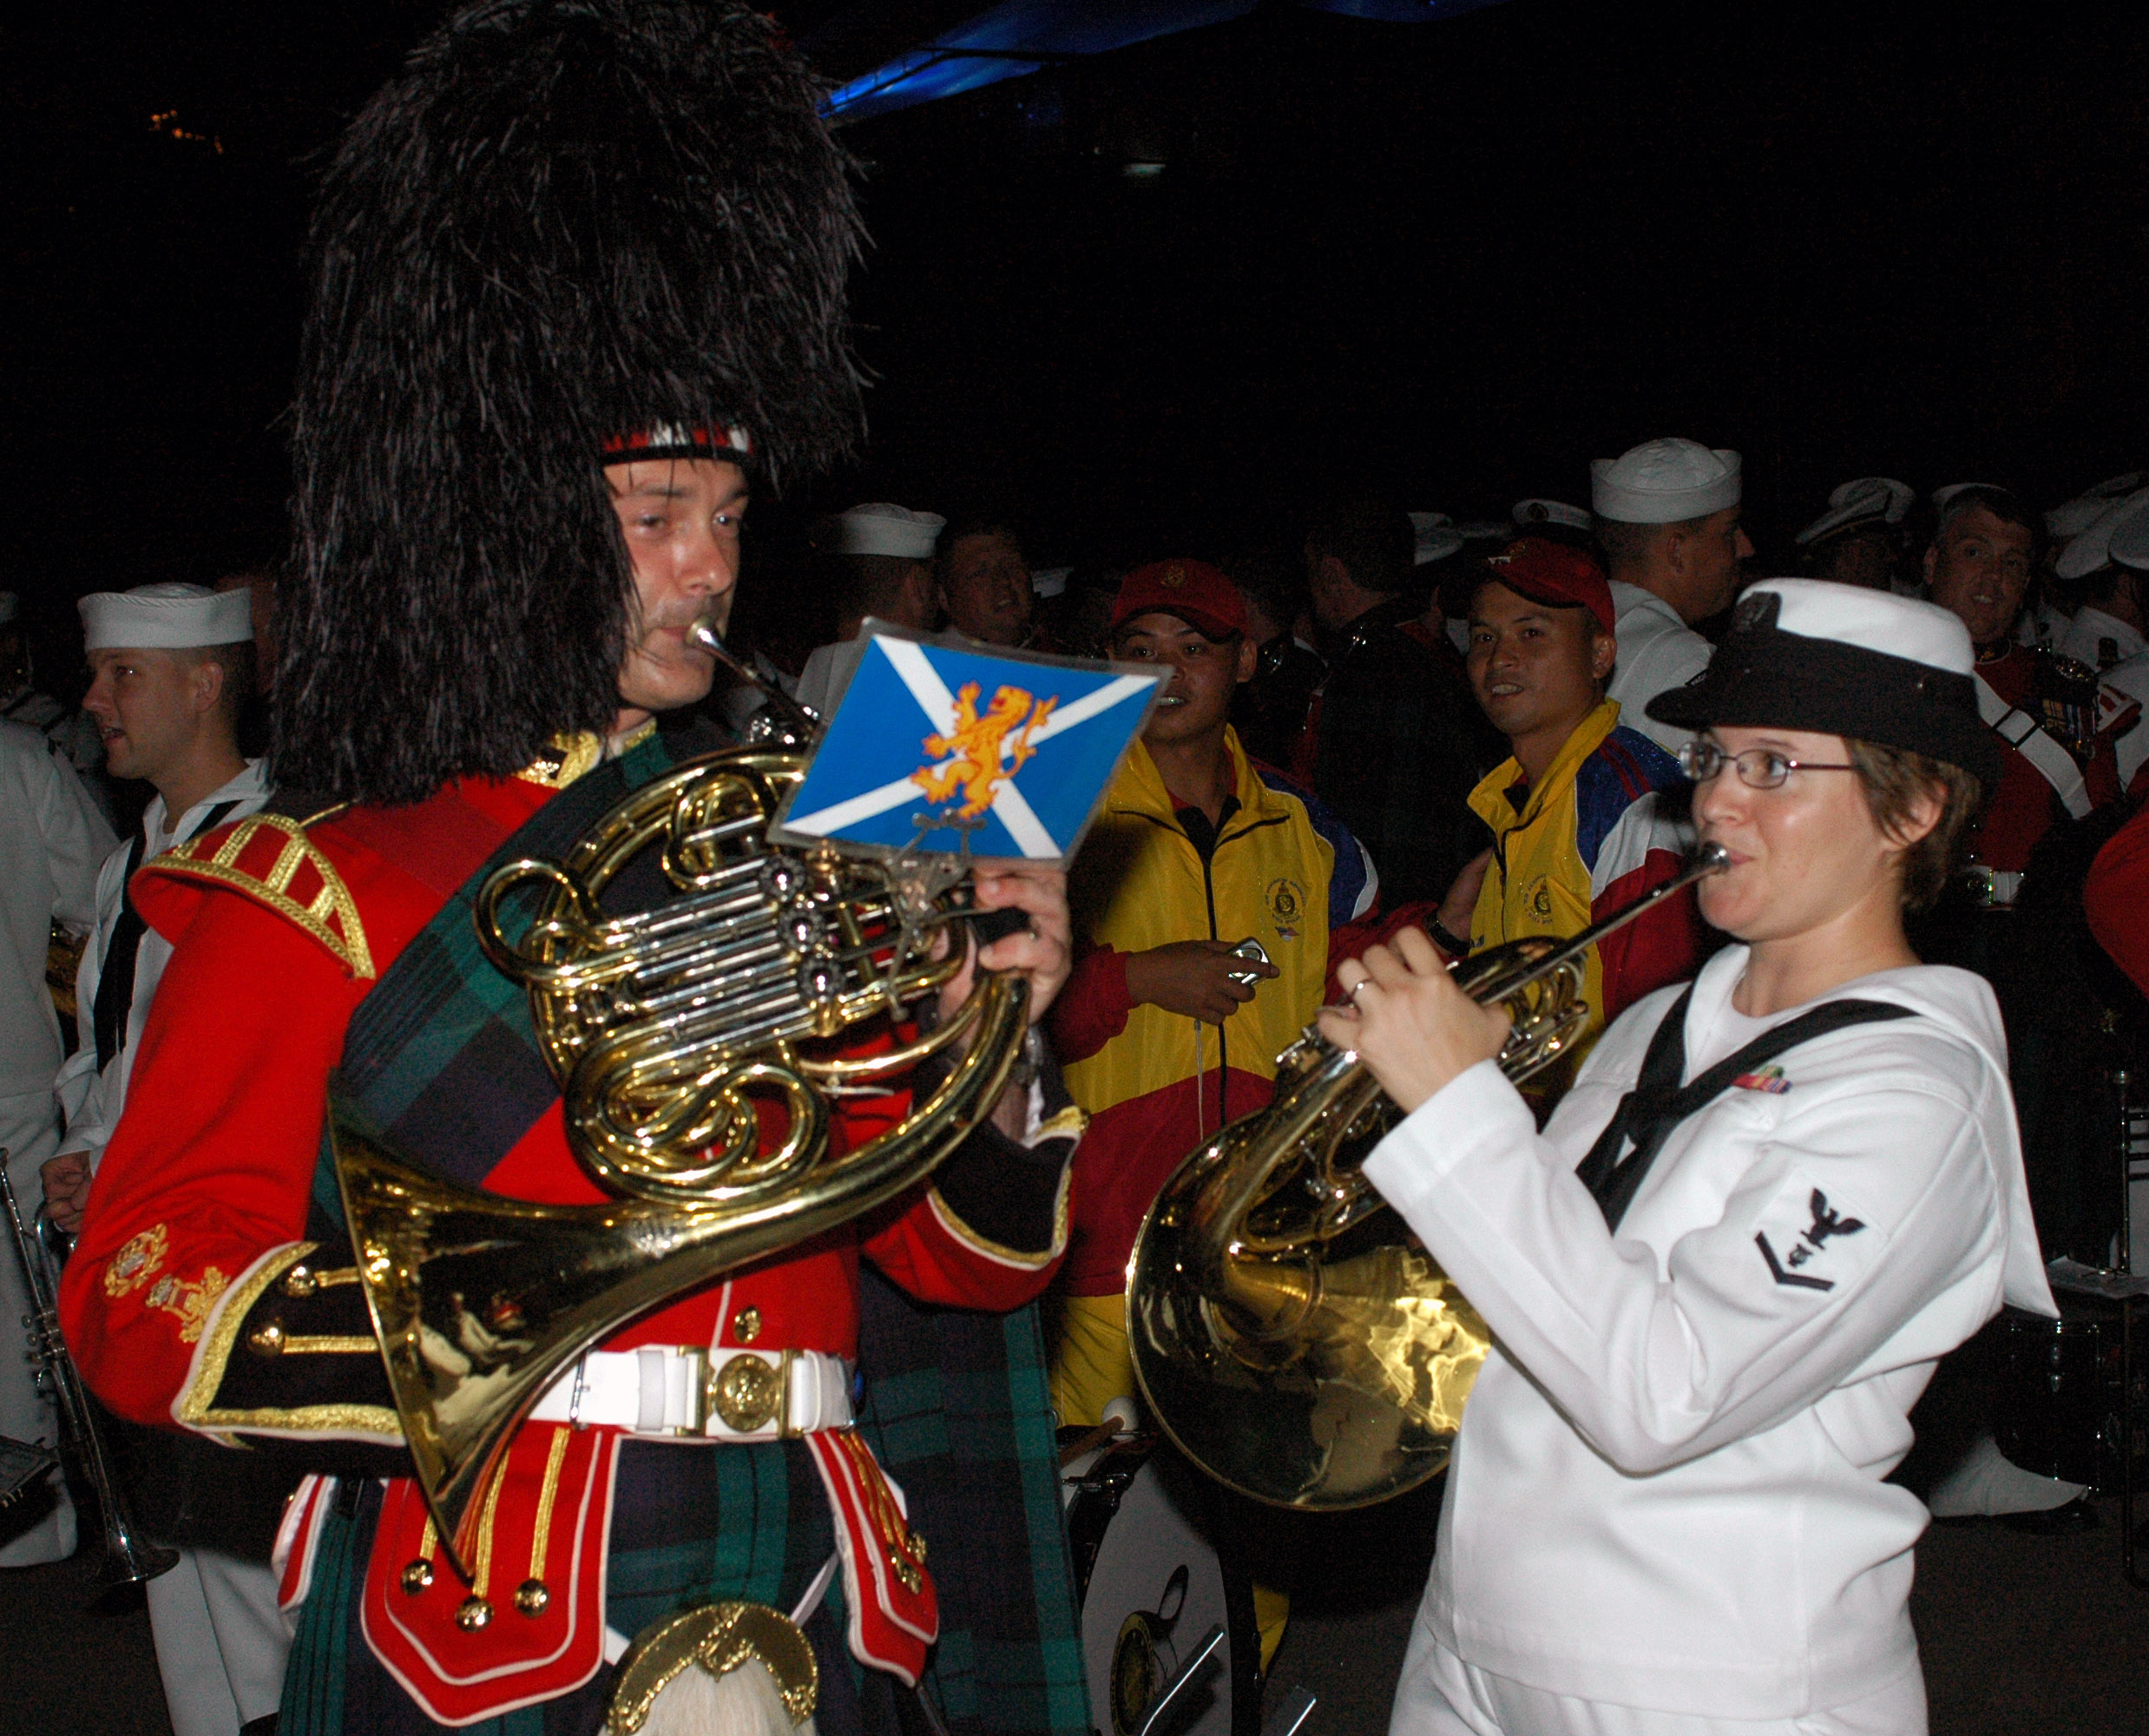 US Navy 070907-N-5174T-005 Musician 3rd Class Helena Giammarco, a Pacific Fleet band member, plays the French horn backstage with a friend from the Royal Regiment of Scotland following the second night of performances at the Ku